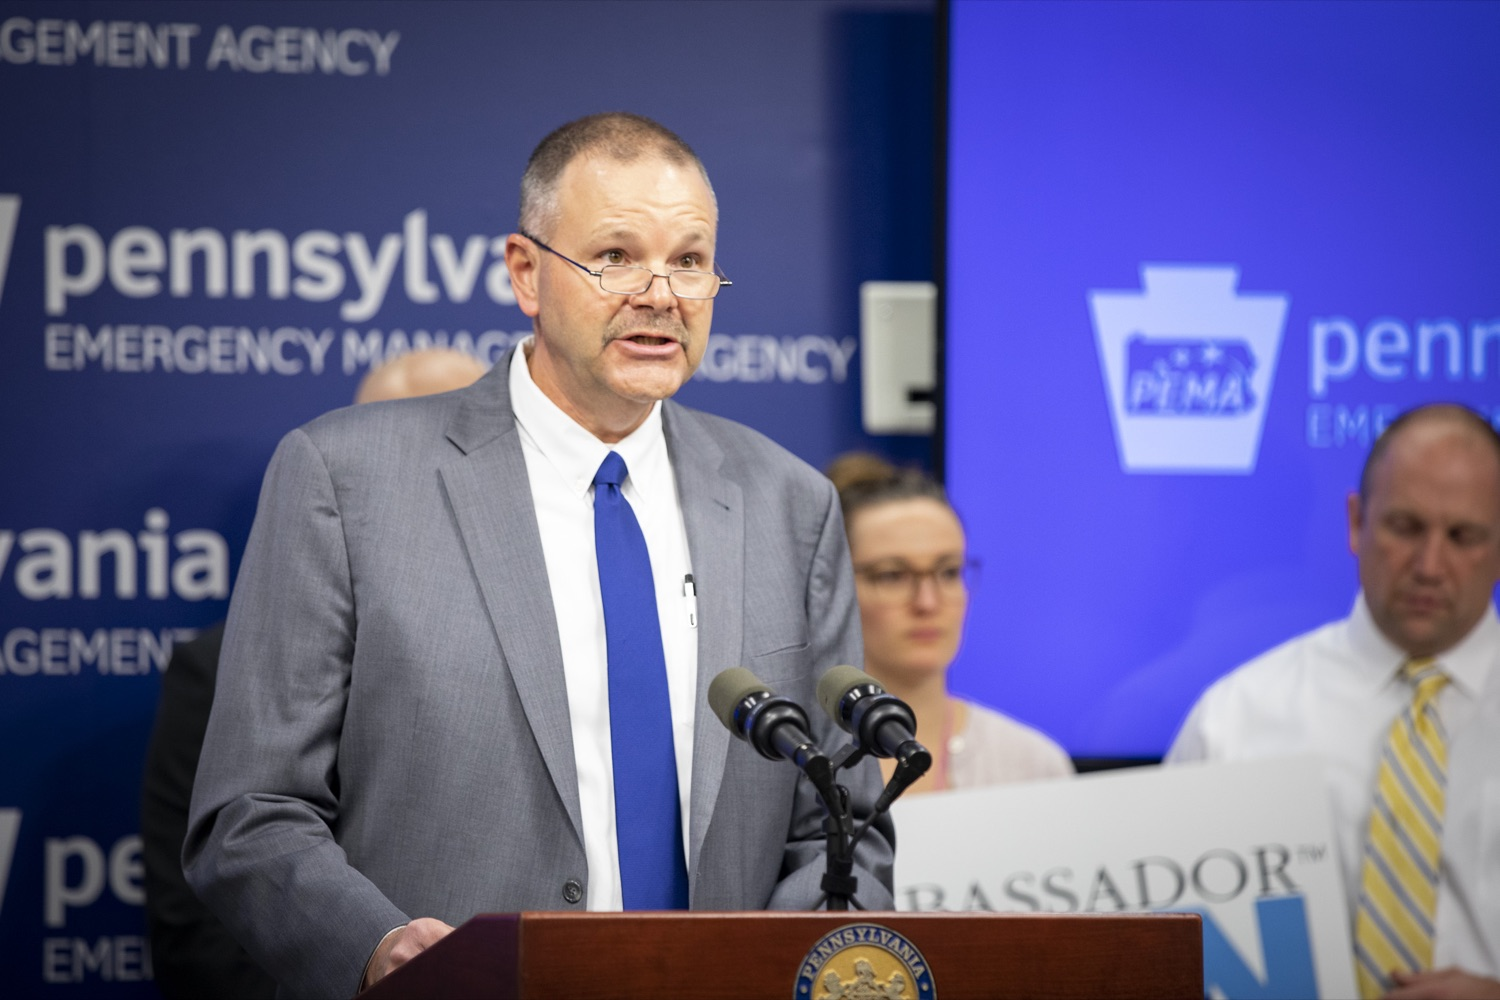 "<a href=""http://filesource.abacast.com/commonwealthofpa/photo/17500_pema_StormReady_cz_14.JPG"" target=""_blank"">⇣ Download Photo<br></a>PEMA Director Randy Padfield announces that Pennsylvania is one of only six states in the nation to achieve StoryReady status, in Harrisburg on November 20, 2019."